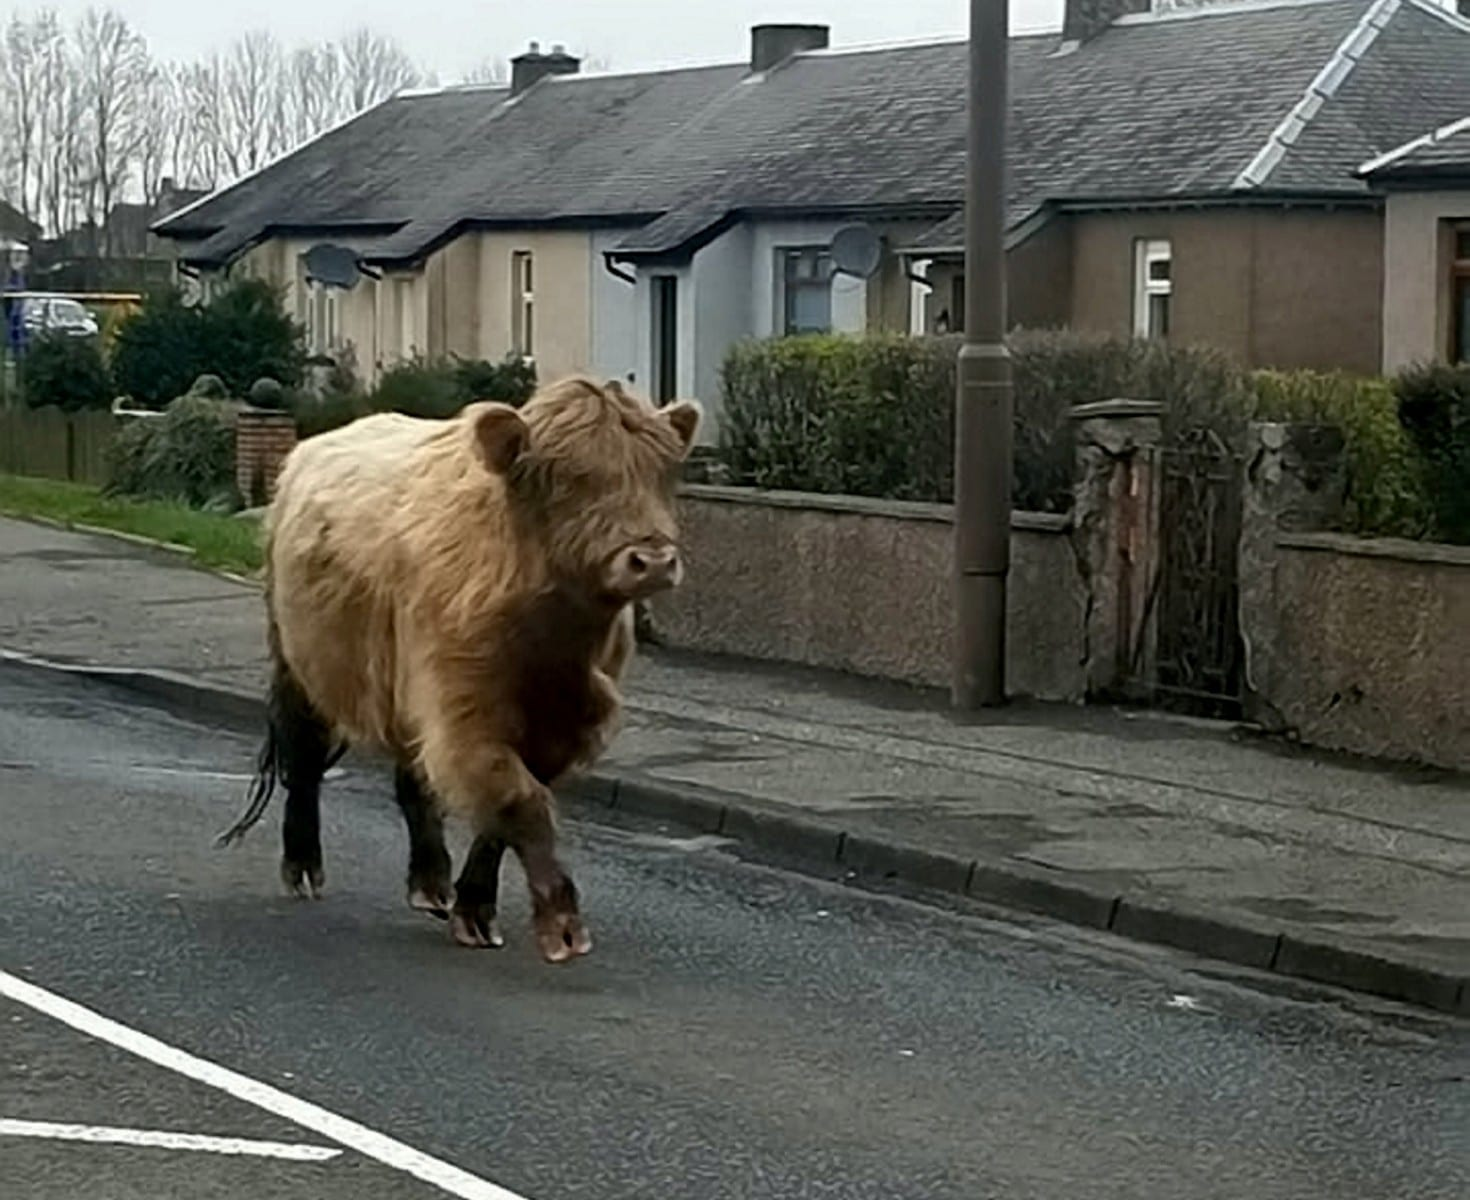 Highland Cow Had A Field Day When She Escaped From A Farm - 'Weaving In And Out Of Cars' In The Street